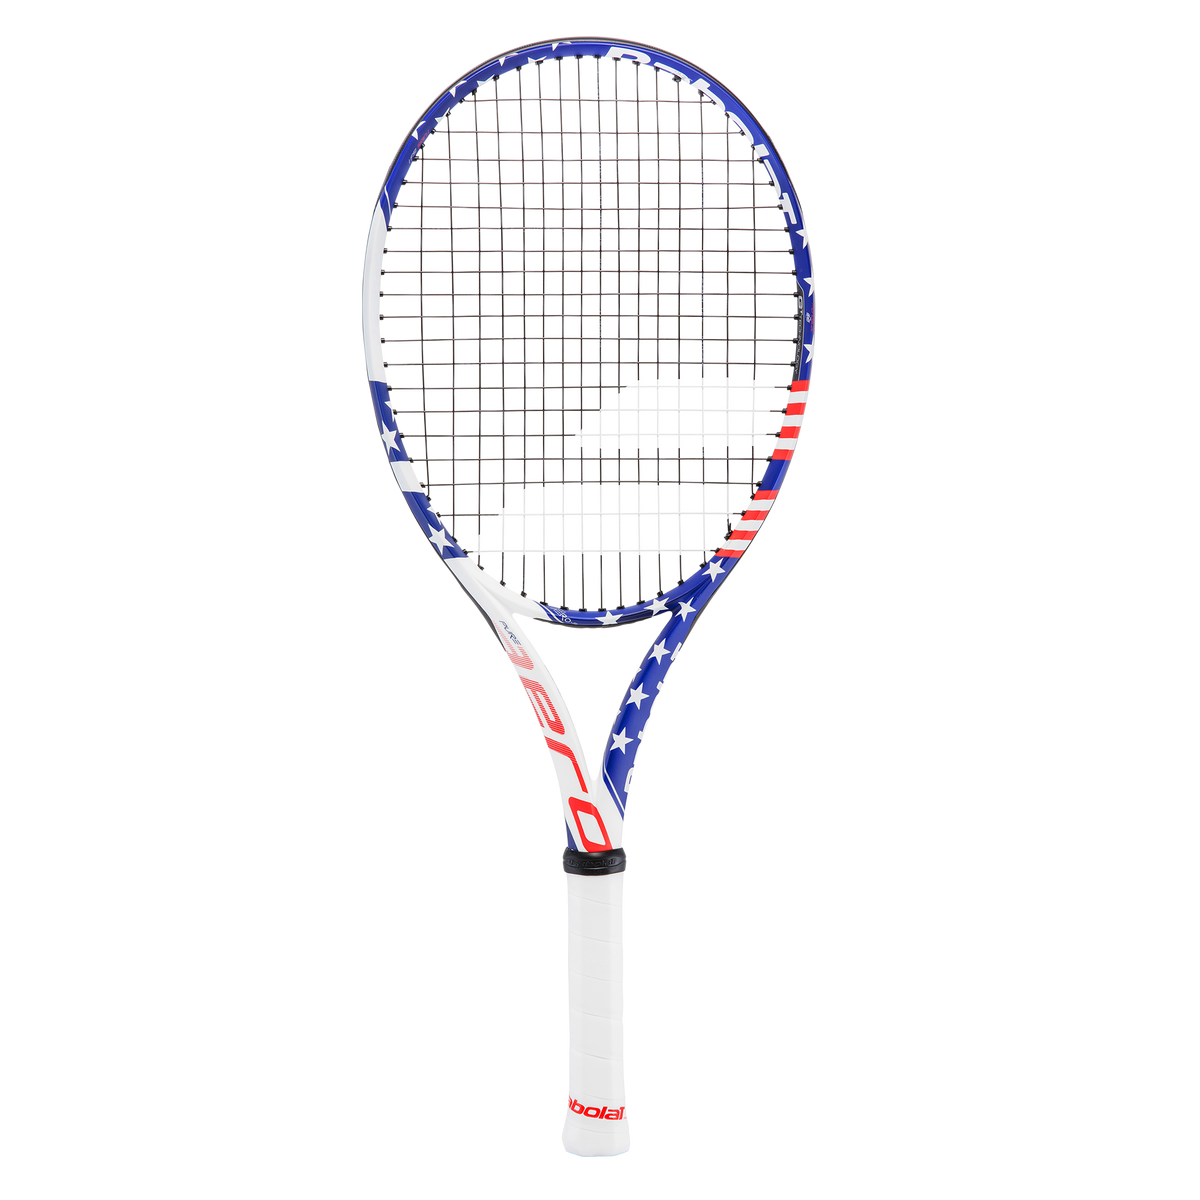 1200x1200 diagonal drawing tennis racquet frames illustrations hd